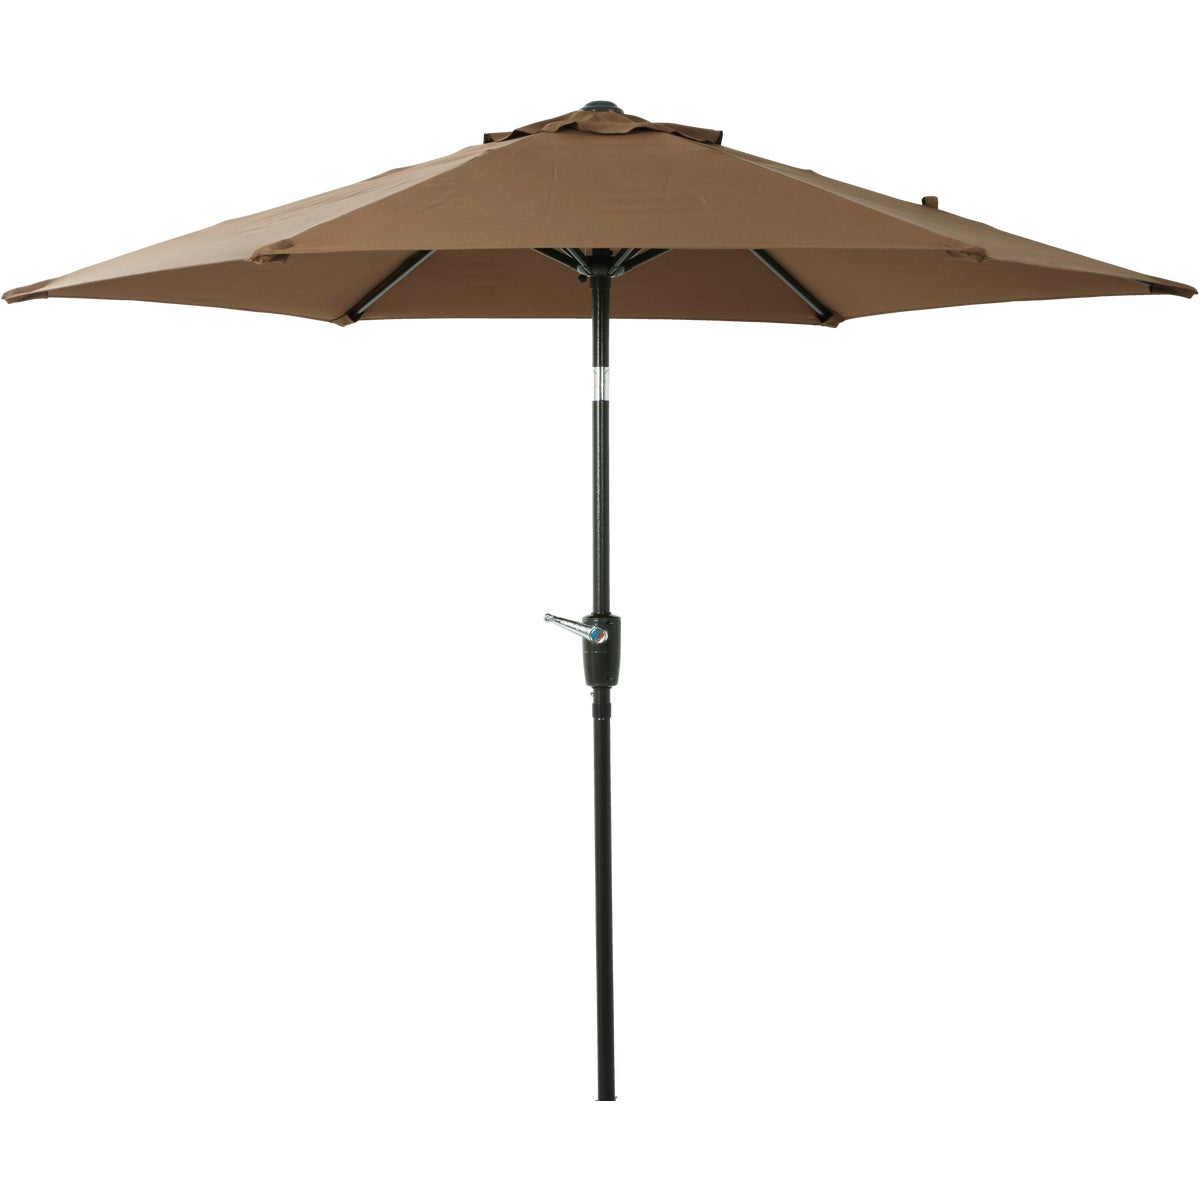 7.5' BROWN UMBRELLA - TJAU-004A-230-BRN by Do it Best